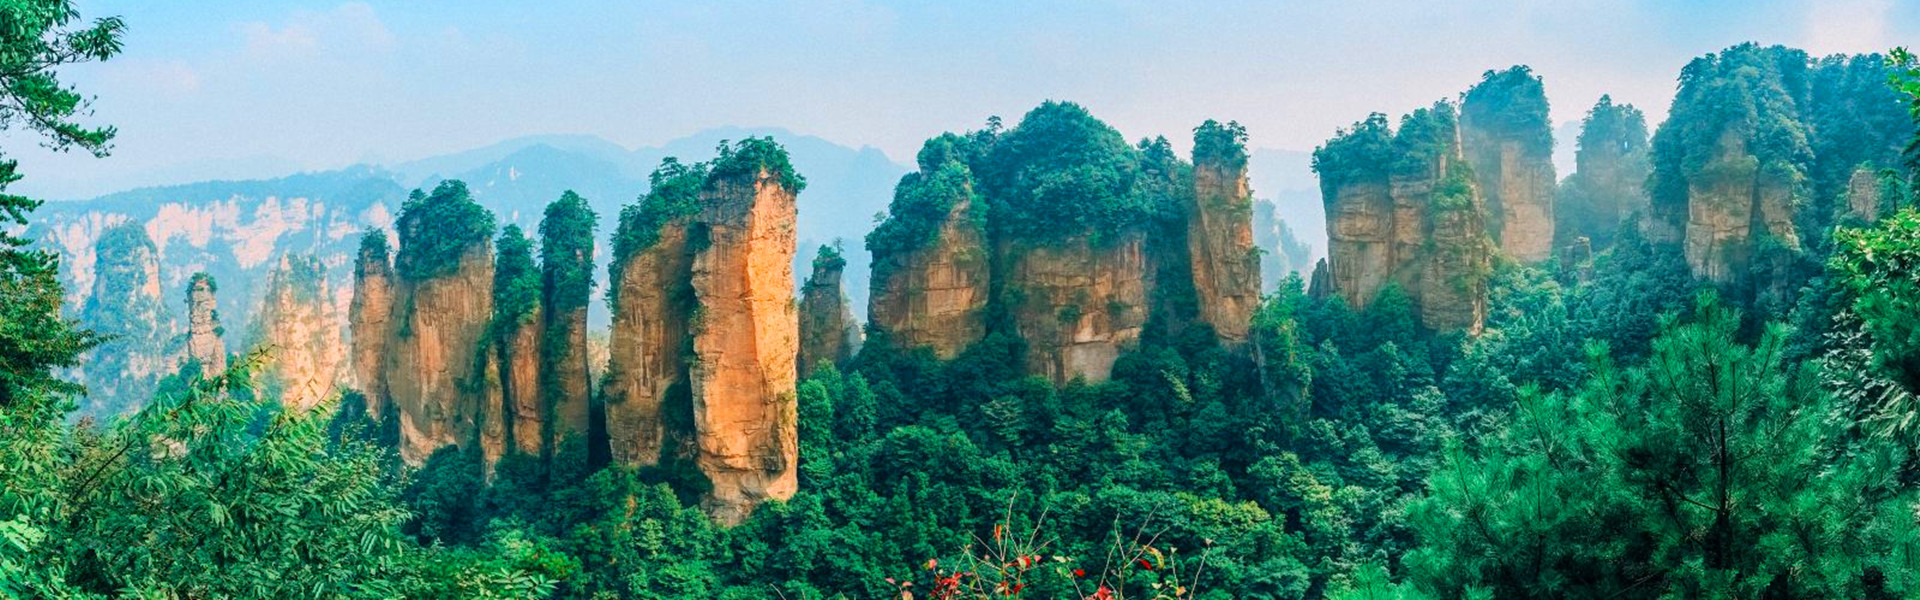 5 Days Changsha Zhangjiajie Tour